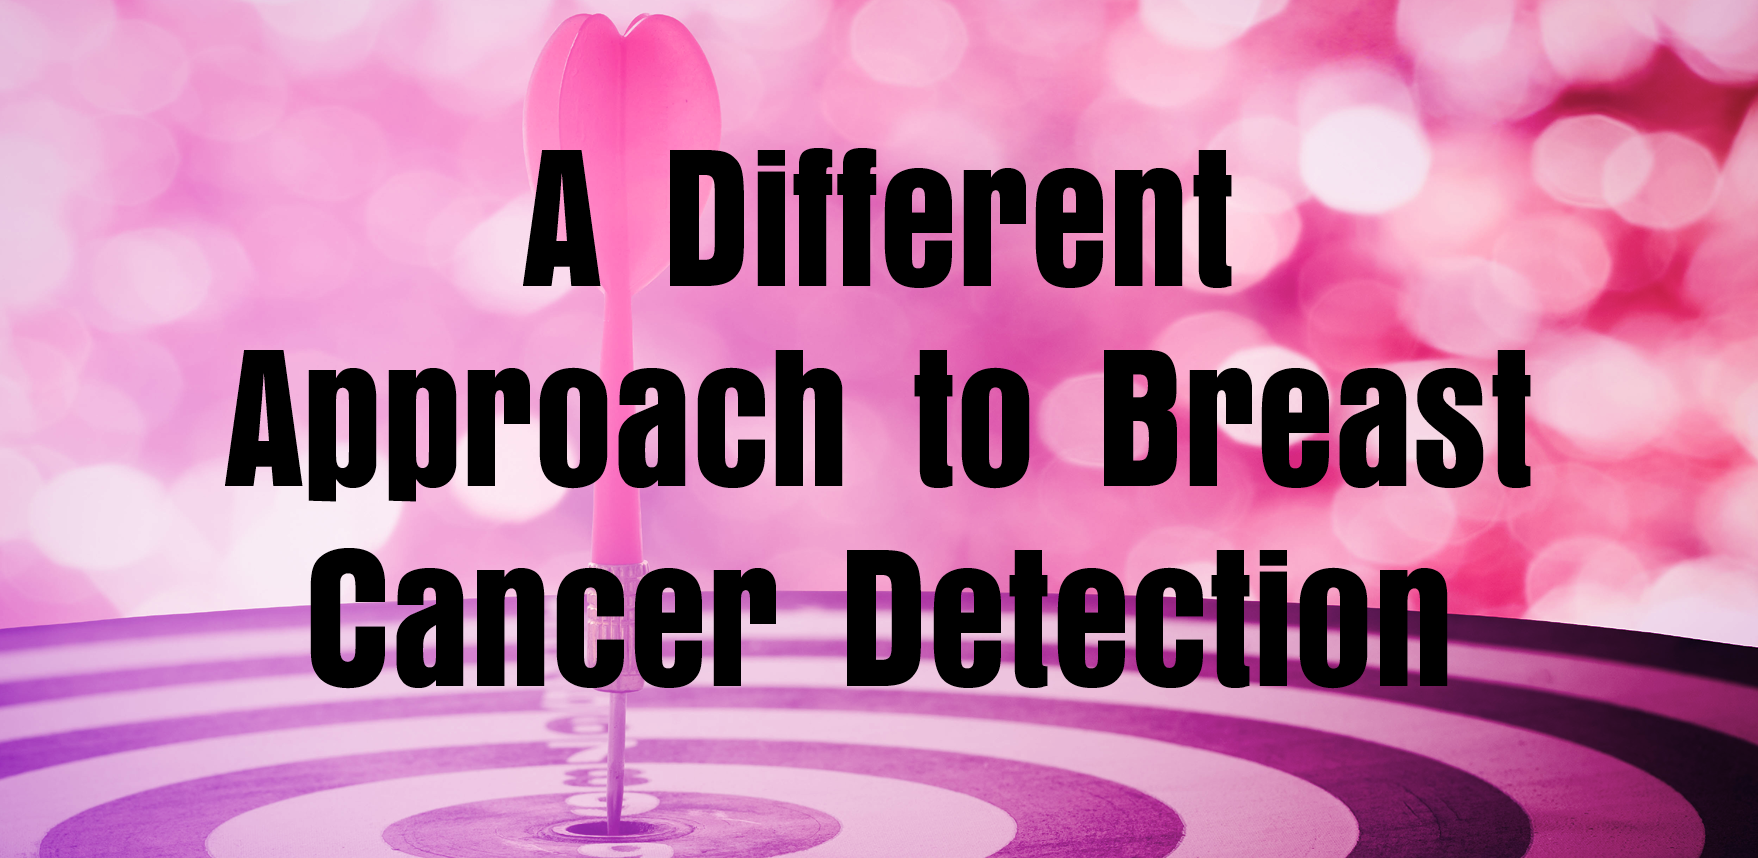 breast cancer detection.png